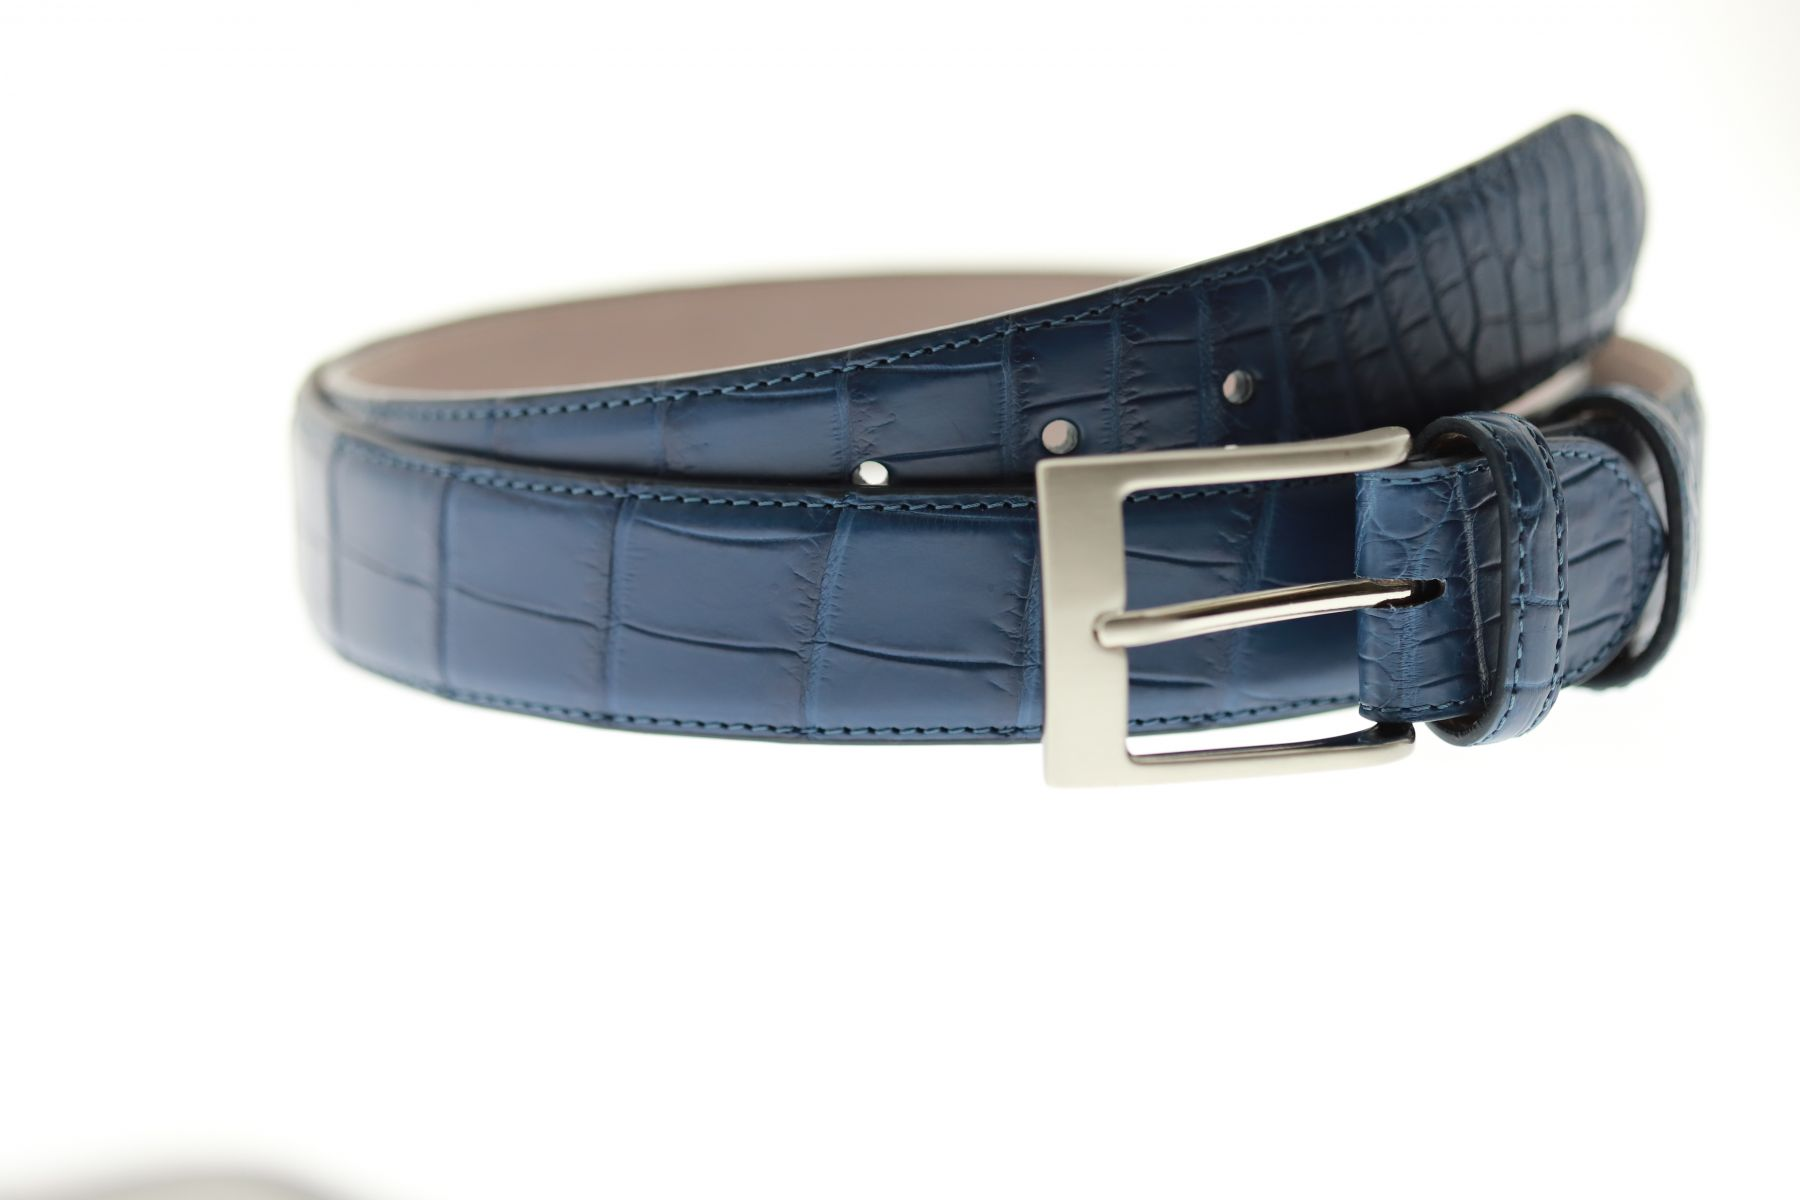 Blue Jeans Belt in Matte Alligator Leather